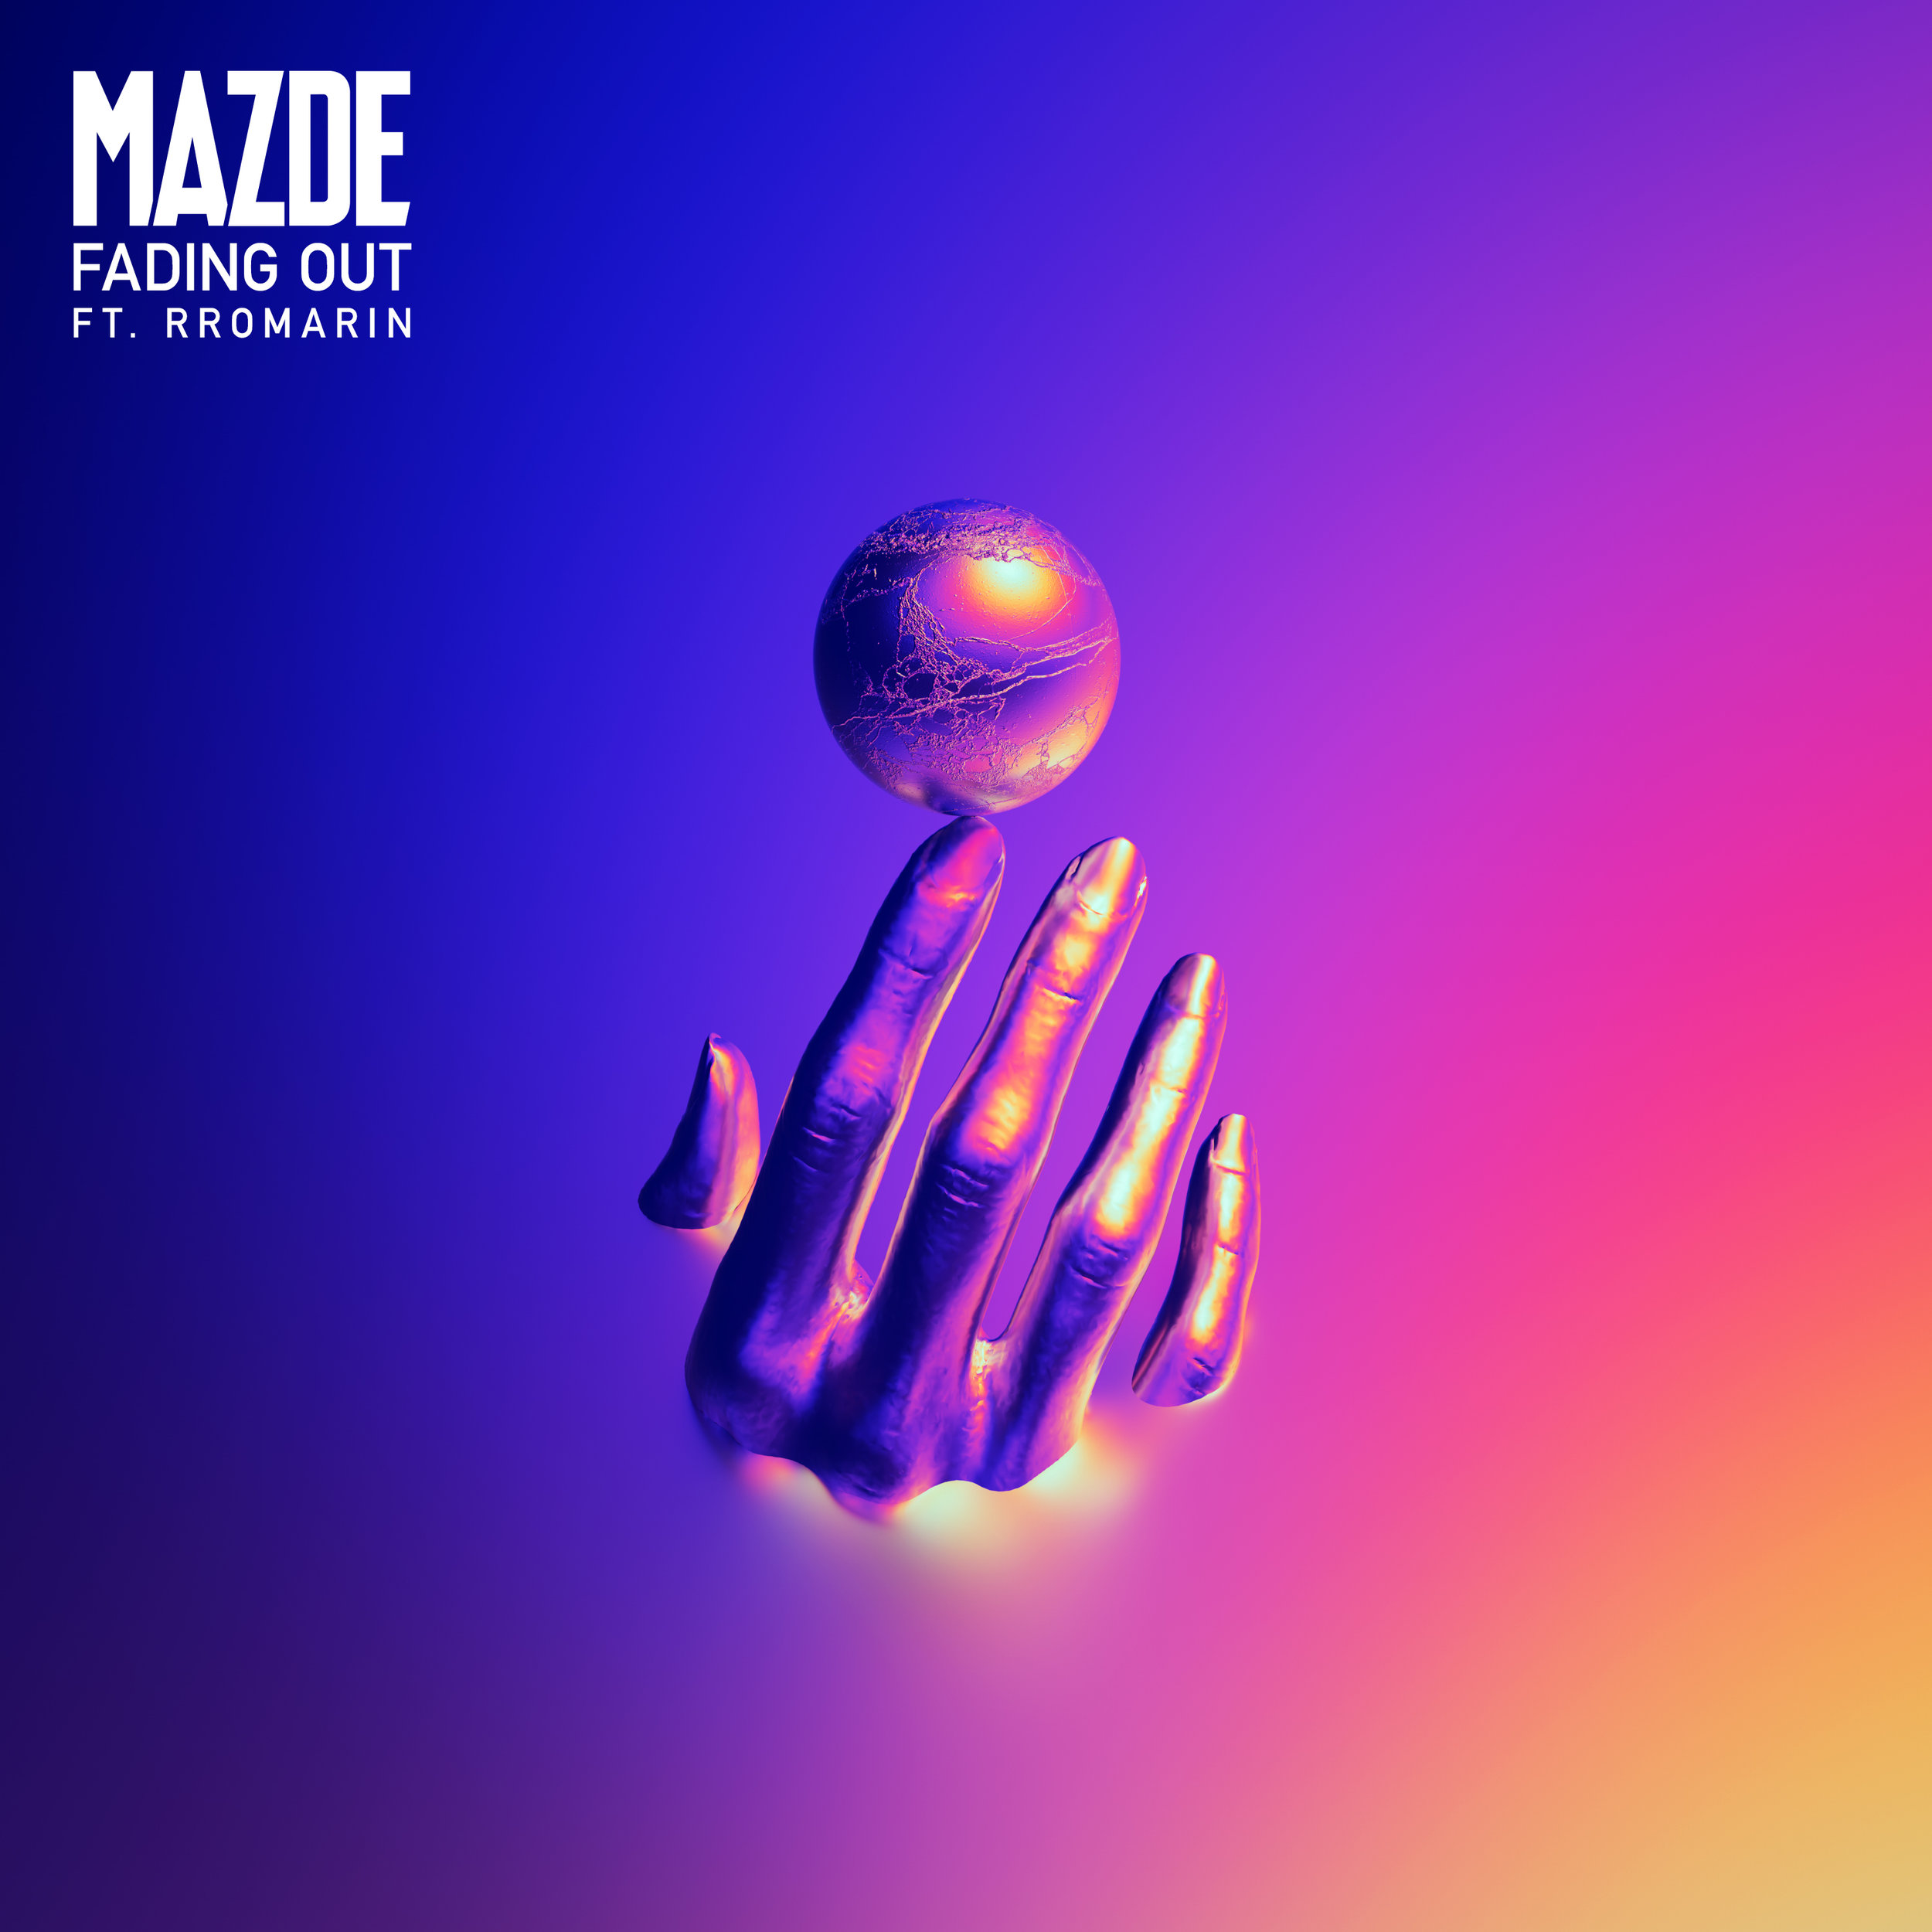 Mazde - Fading Out ft. Rromarin